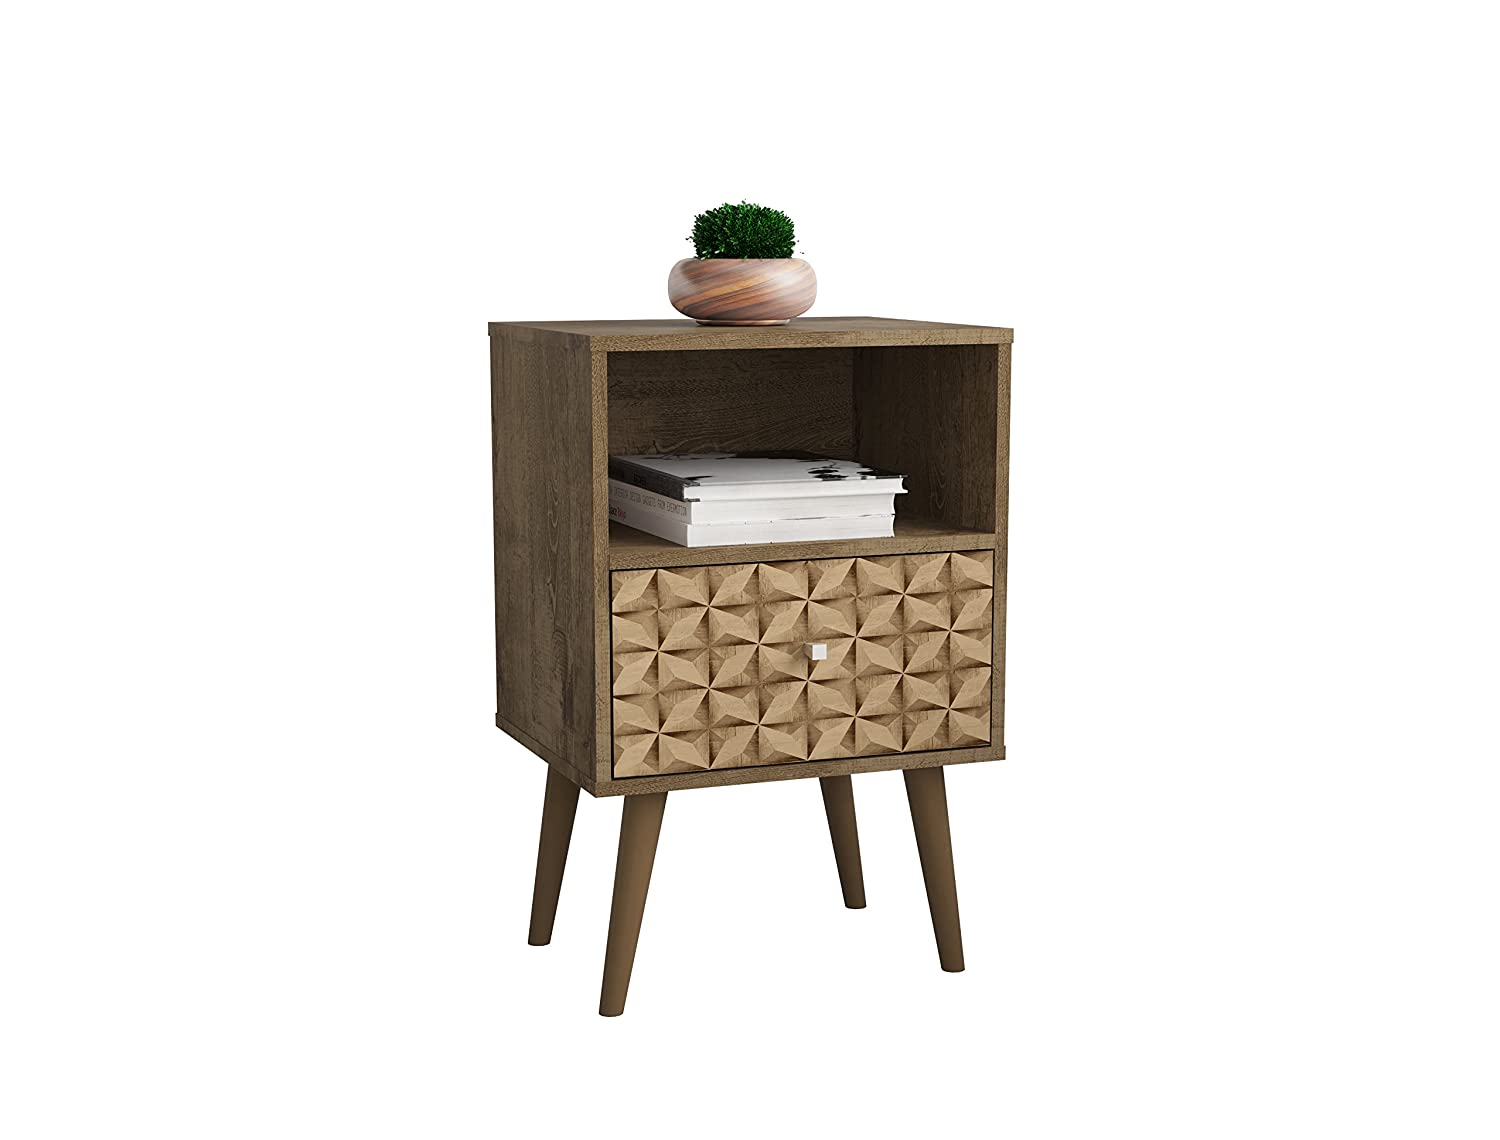 Rustic Brown 3d Brown Manhattan Comfort 203AMC94 Liberty Modern 1 Drawer Bedroom Nightstand End Table, Rustic Brown Yellow